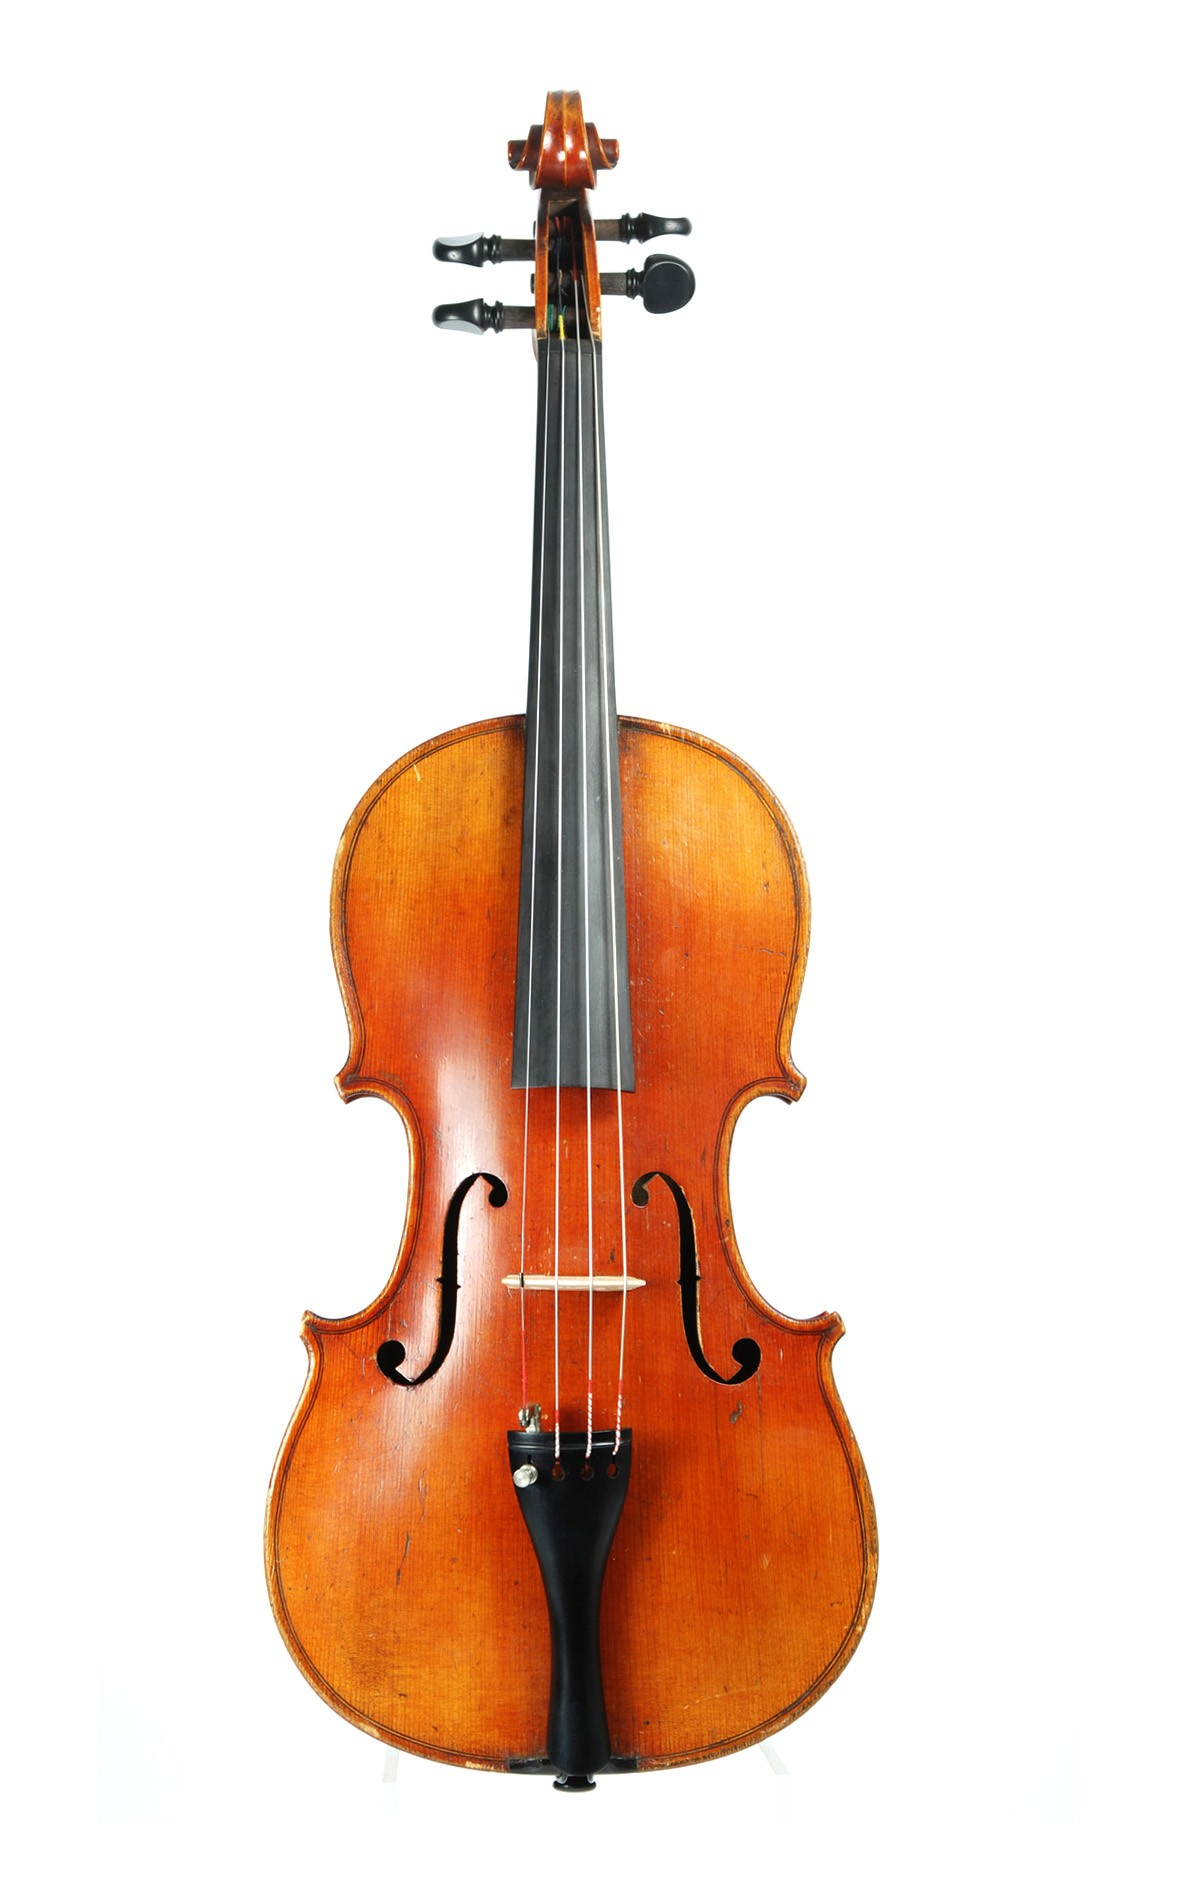 Left handed MIttenwald violin, top view